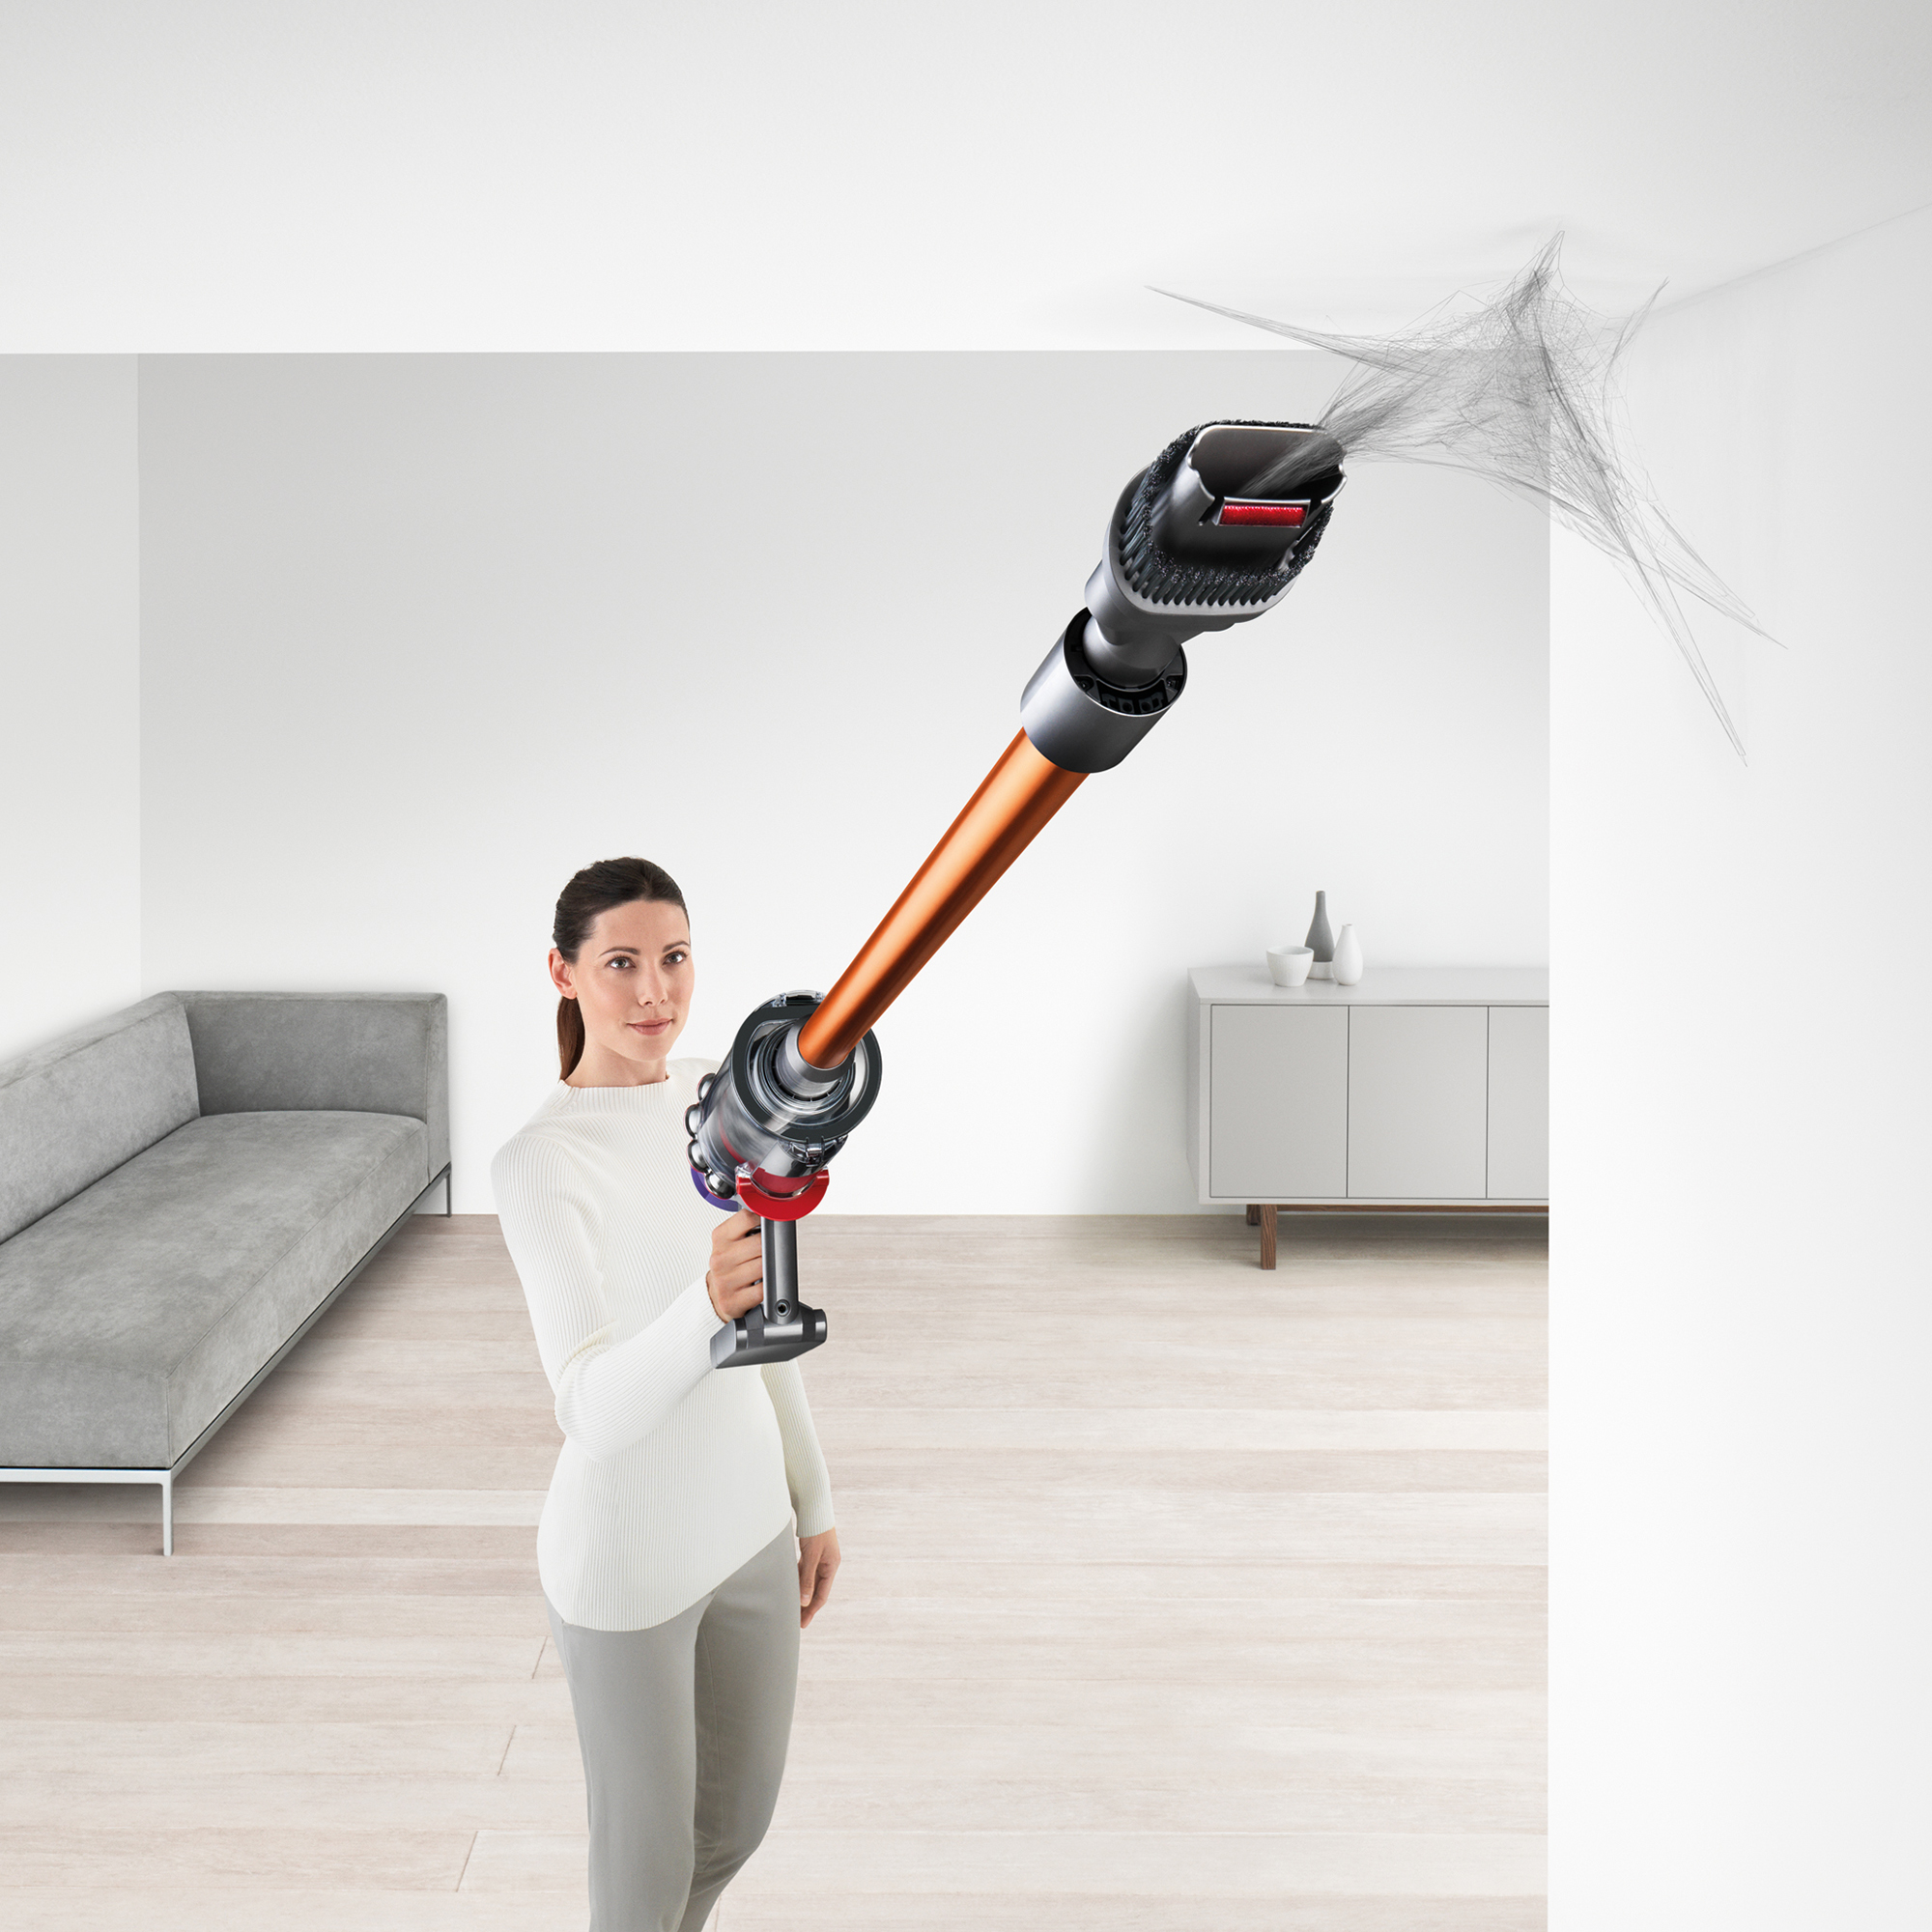 Dyson-V10-Absolute-Cordless-Vacuum-Cleaner-Refurbished thumbnail 24